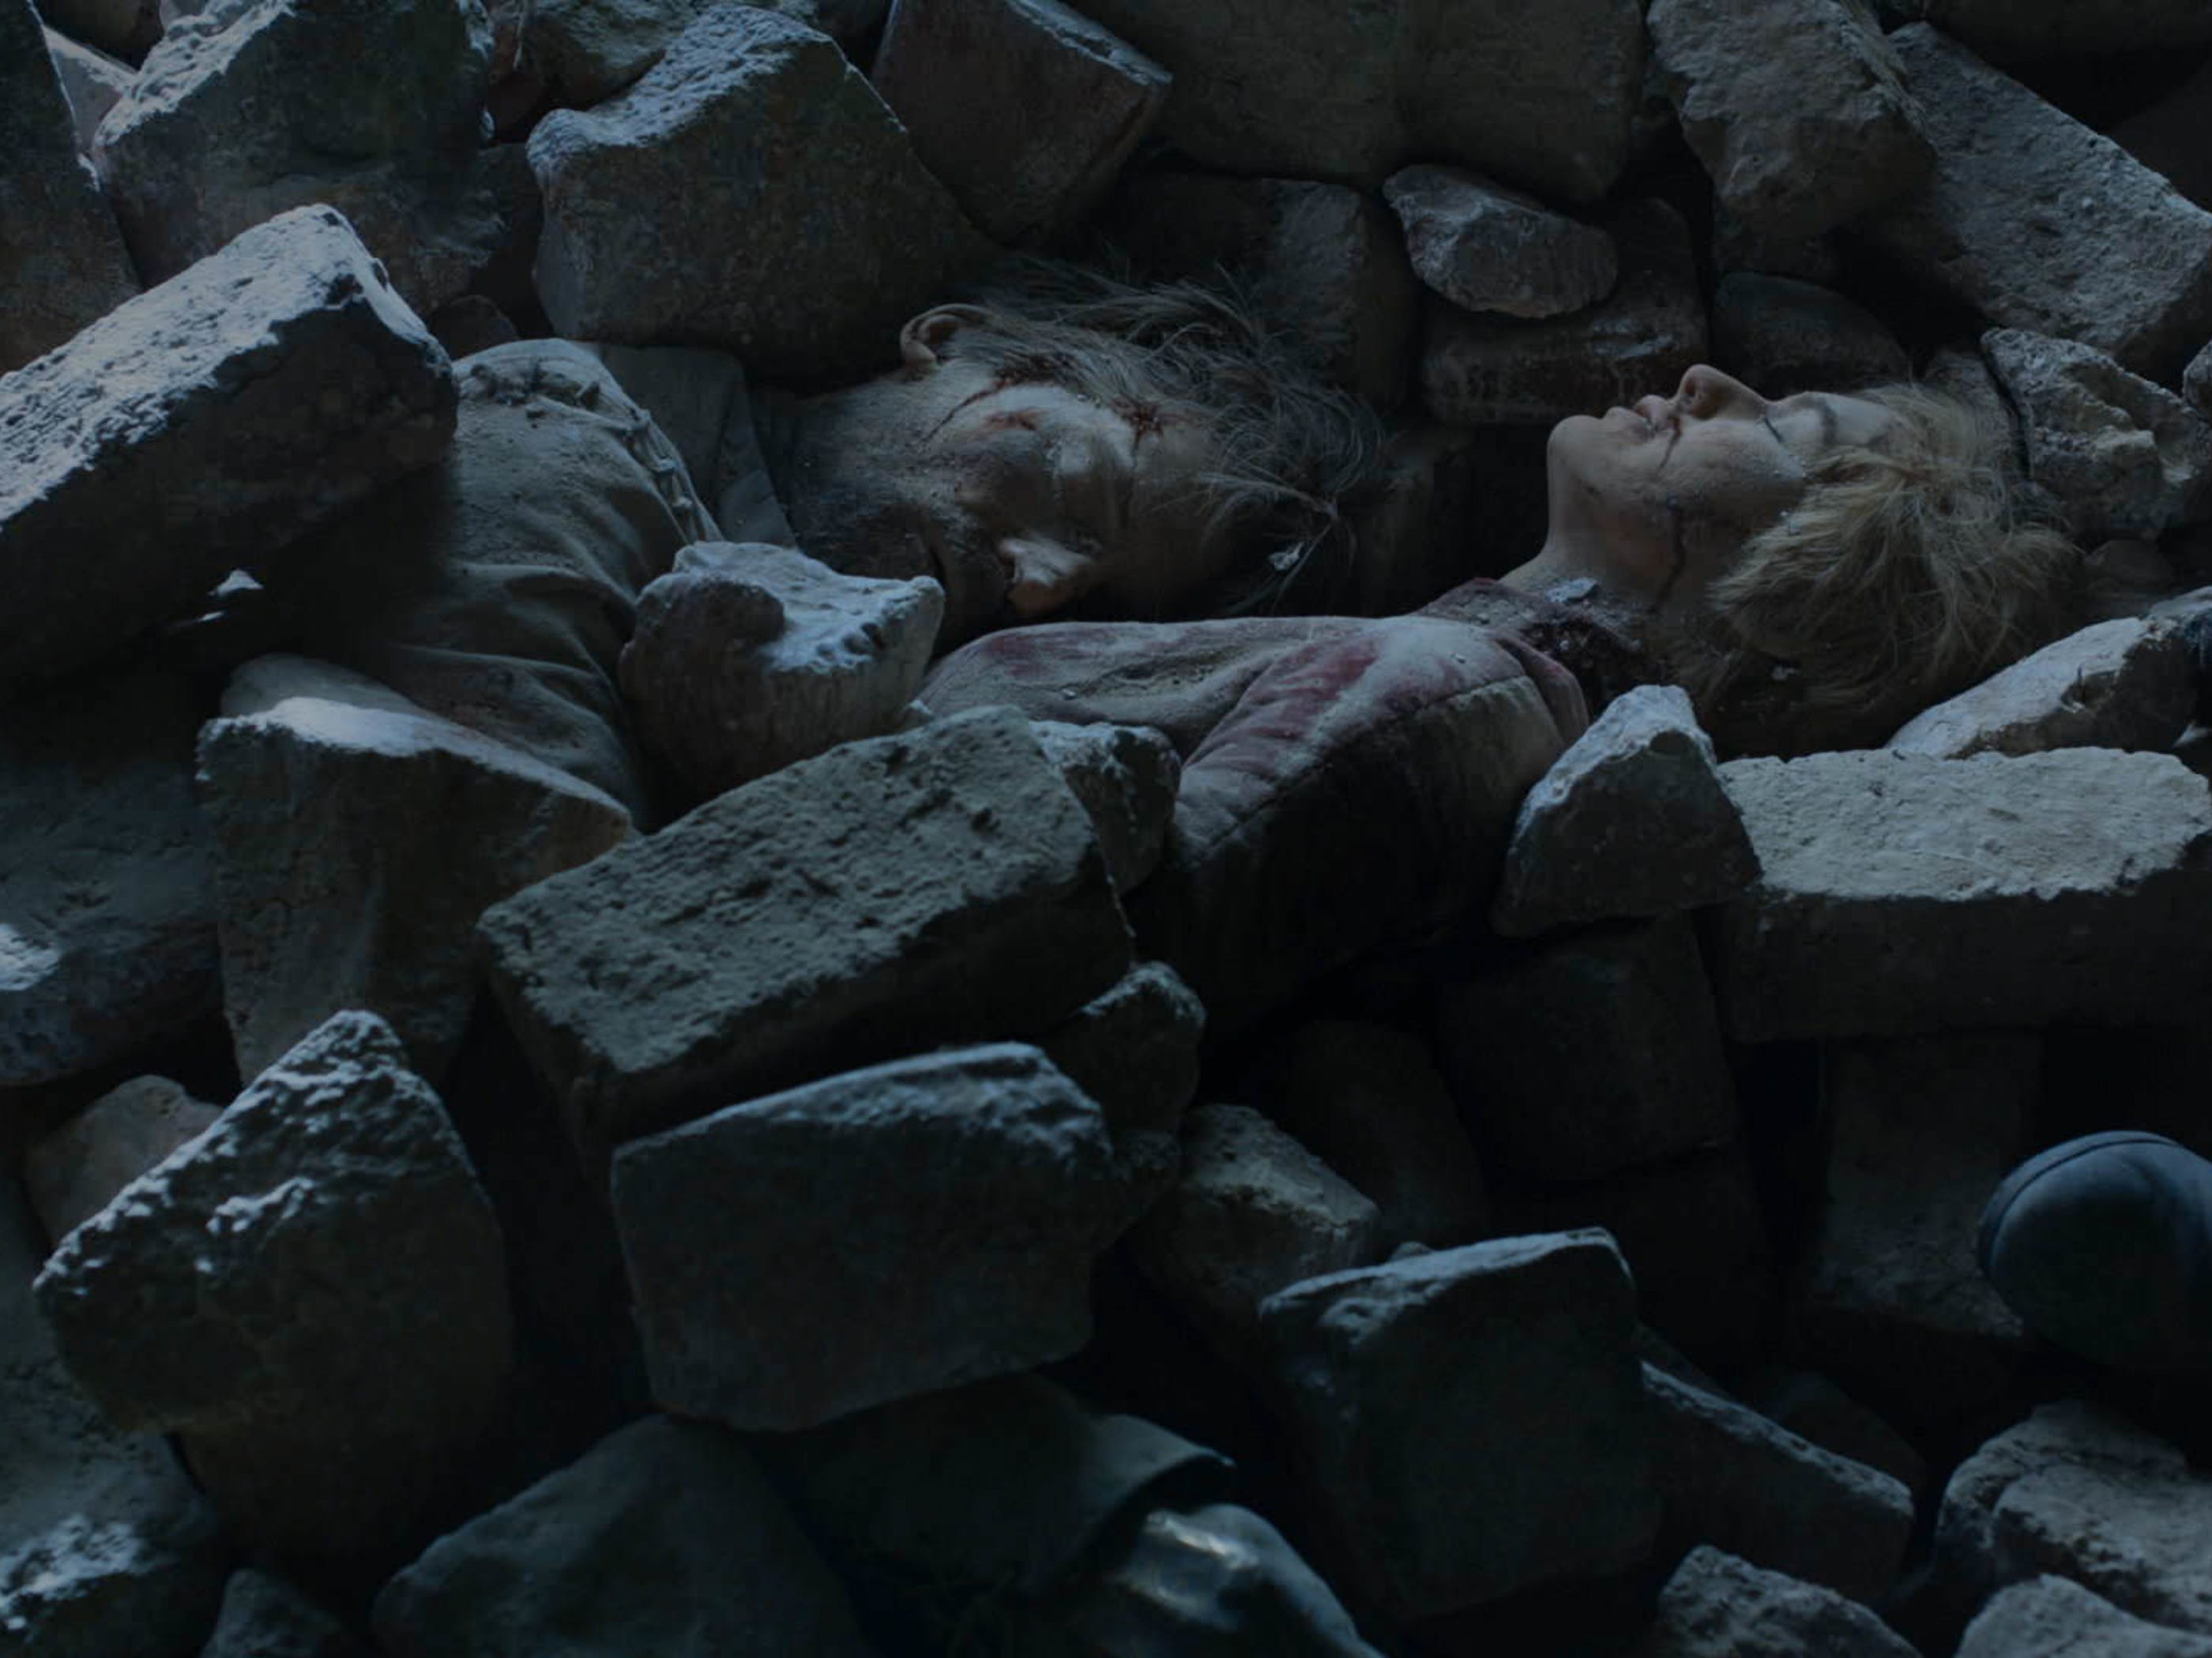 Jaime Lannister (Nikolaj Coster-Waldau), left, and his sister, Cersei (Lena Headey), died together in the Red Keep.